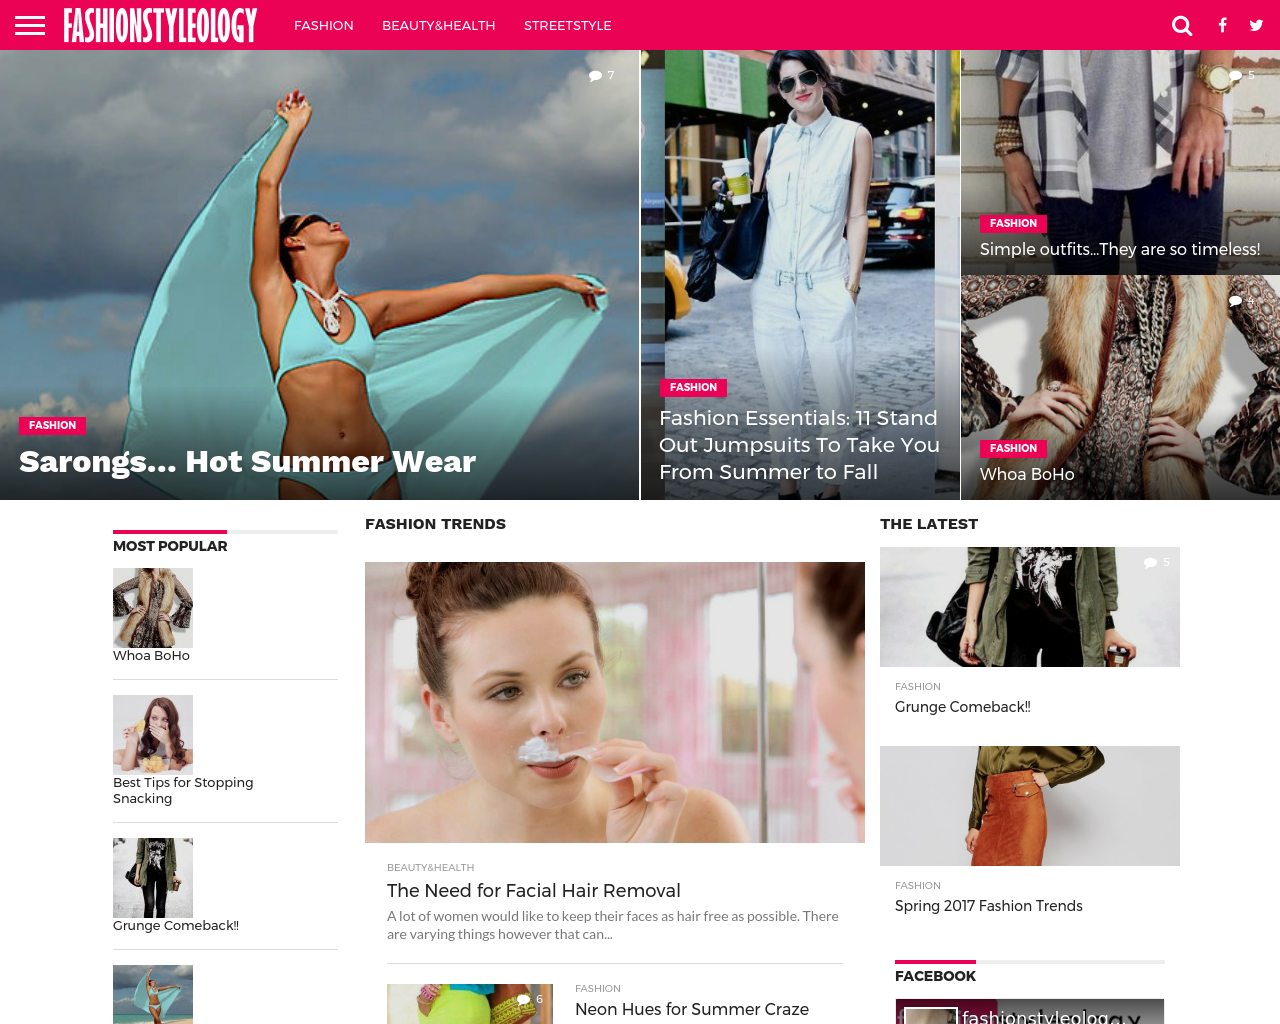 FashionStyleology-Advertising-Reviews-Pricing